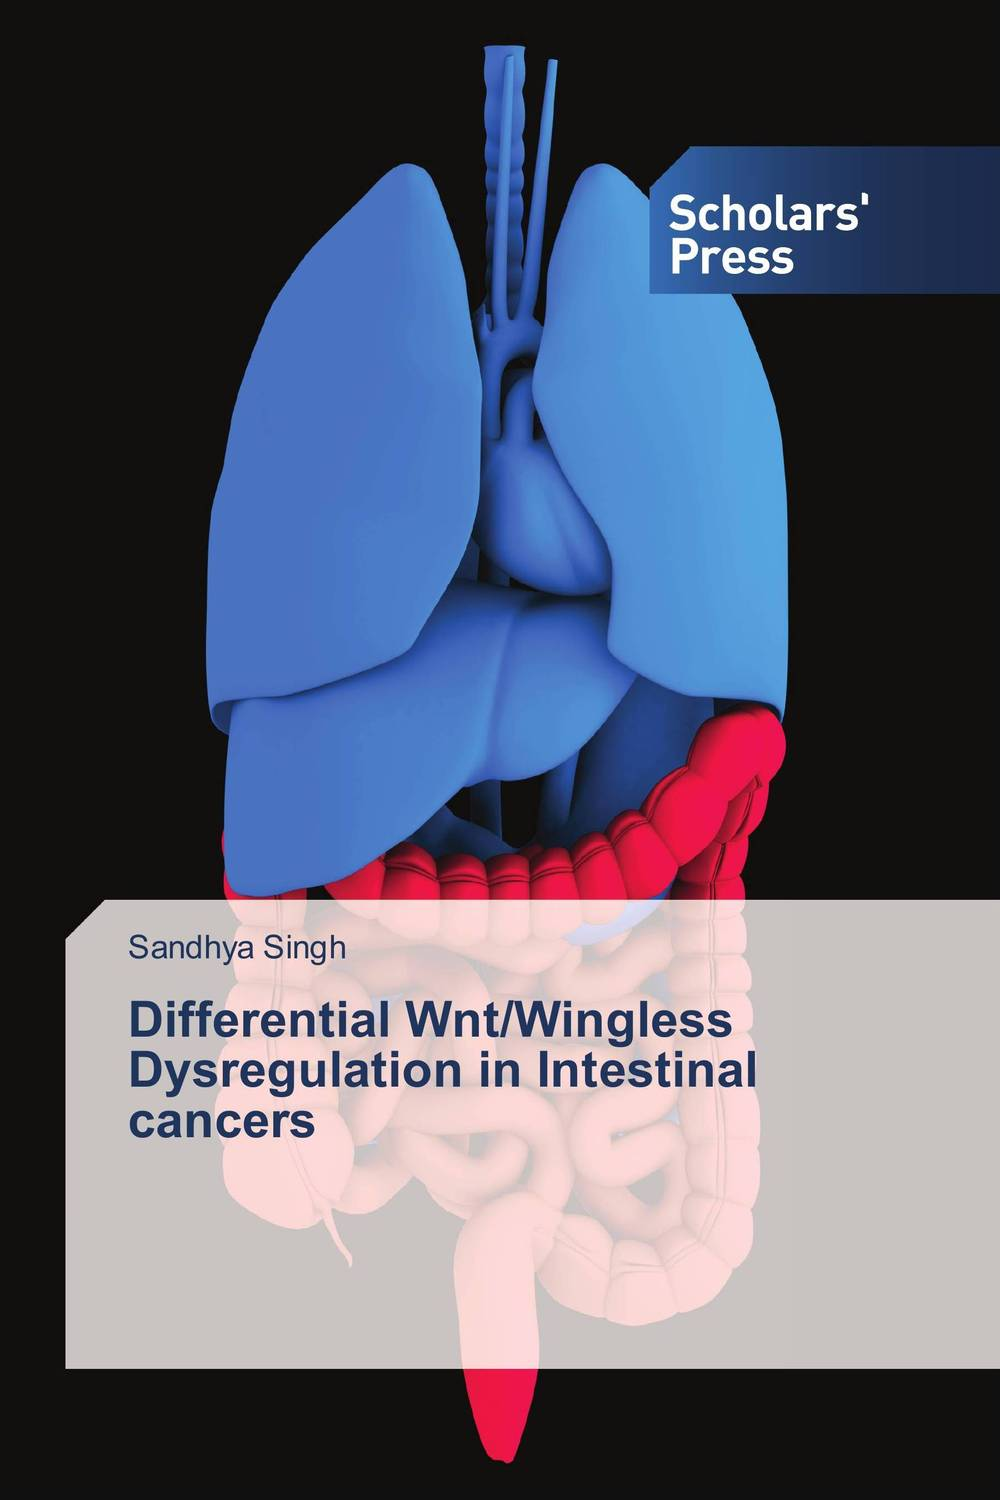 Differential Wnt/Wingless Dysregulation in Intestinal cancers fhit a hit in human cancers